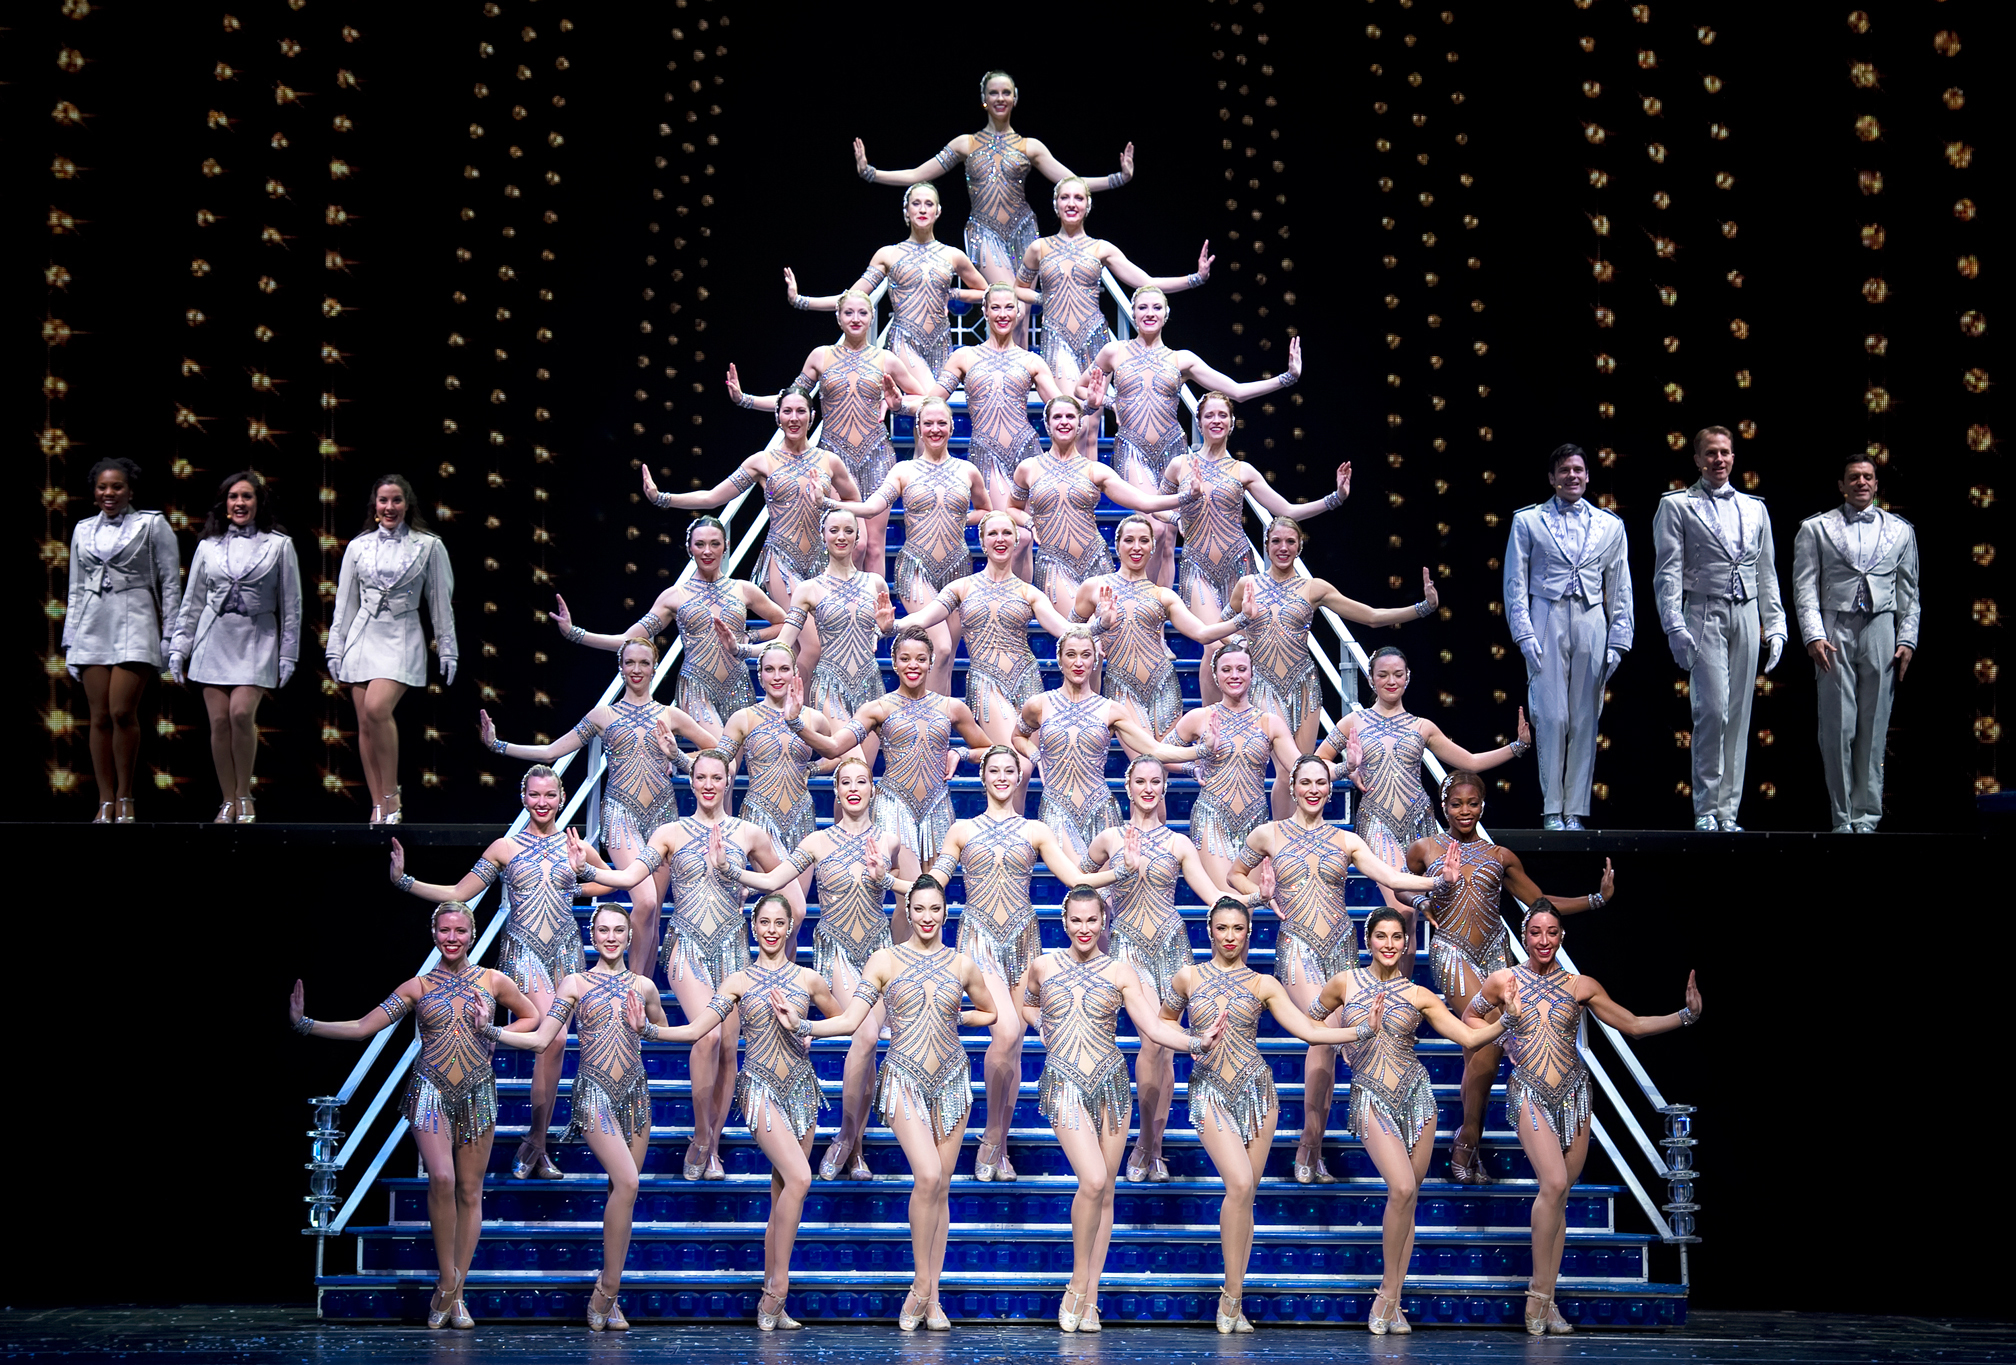 Visit the Rockettes at Radio City